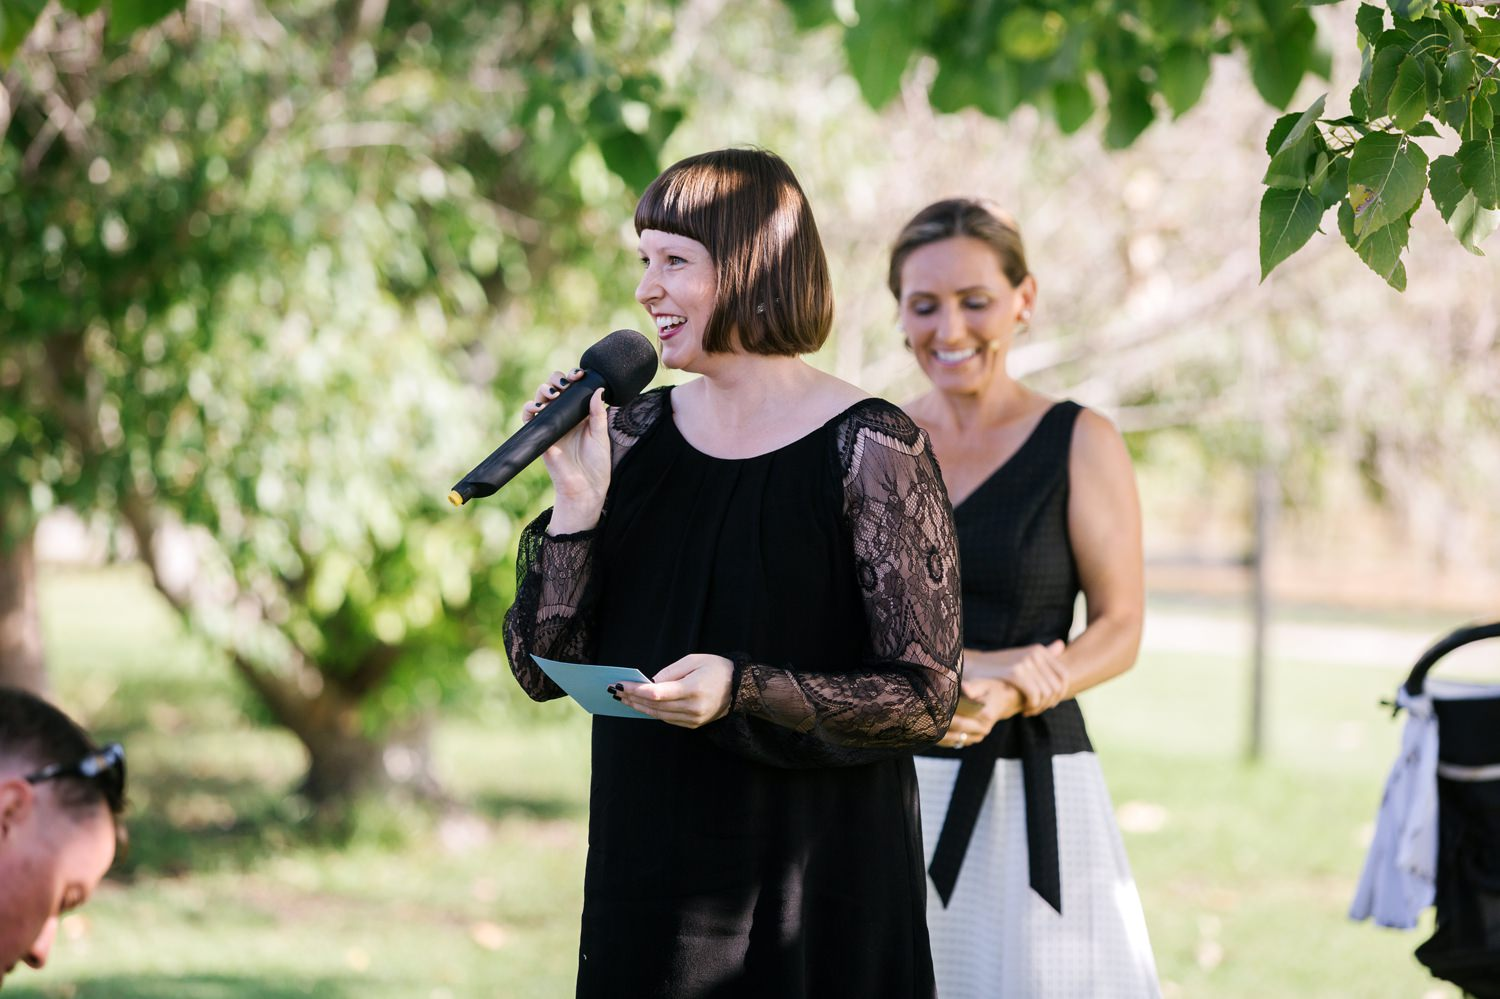 sarah jared the vinegrove mudgee canberra wedding photographer erin latimore 54.jpg